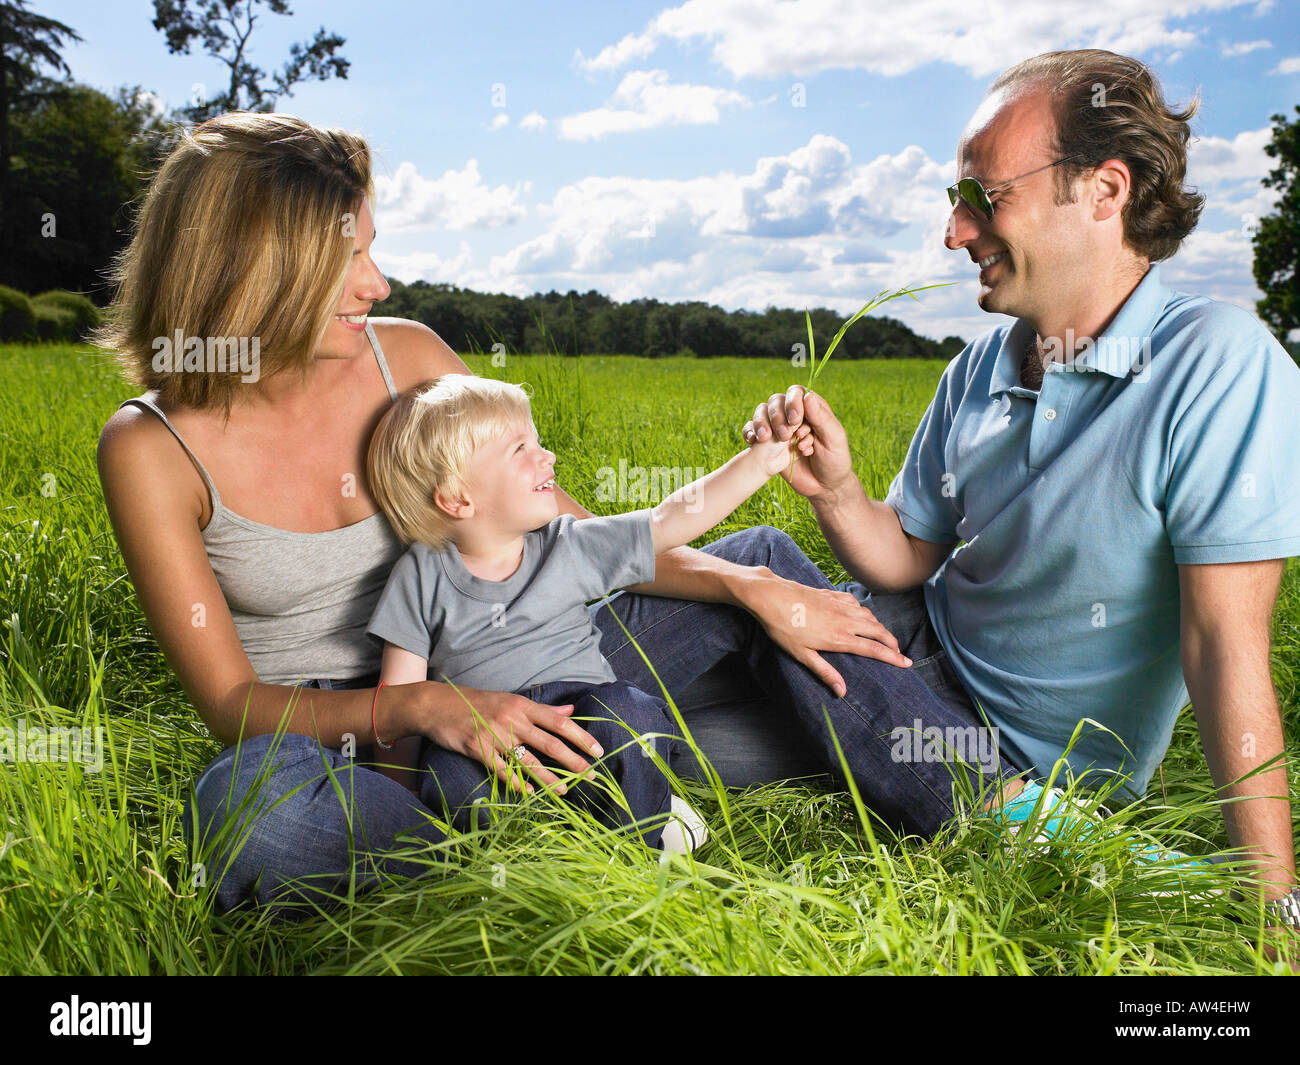 Family enjoying a good time in a field. - Stock Image